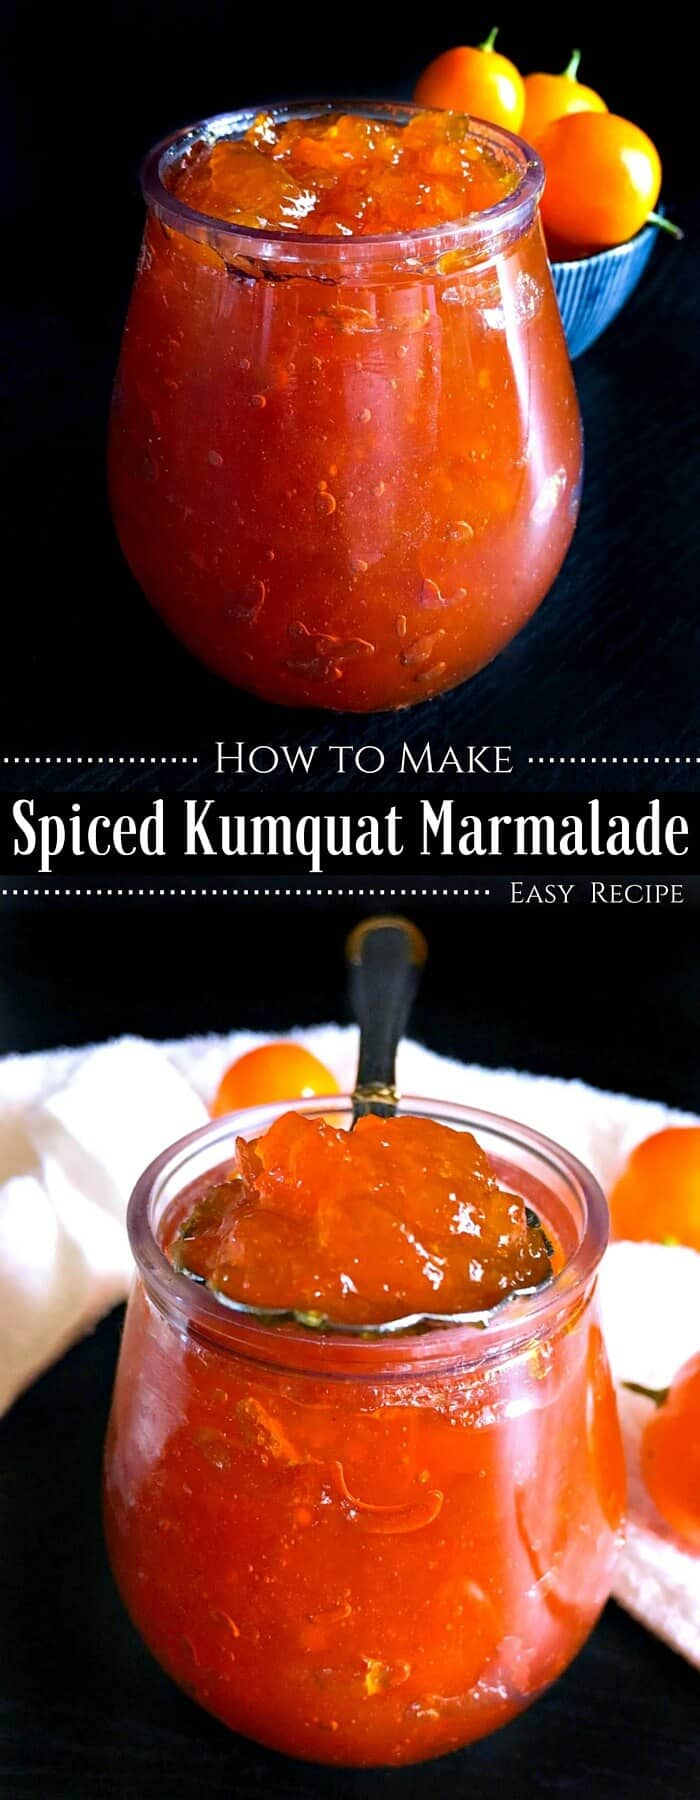 How to make a Kumquat Marmalade - Easy Recipe : #kumquat #marmalade #jam #recipe #orange